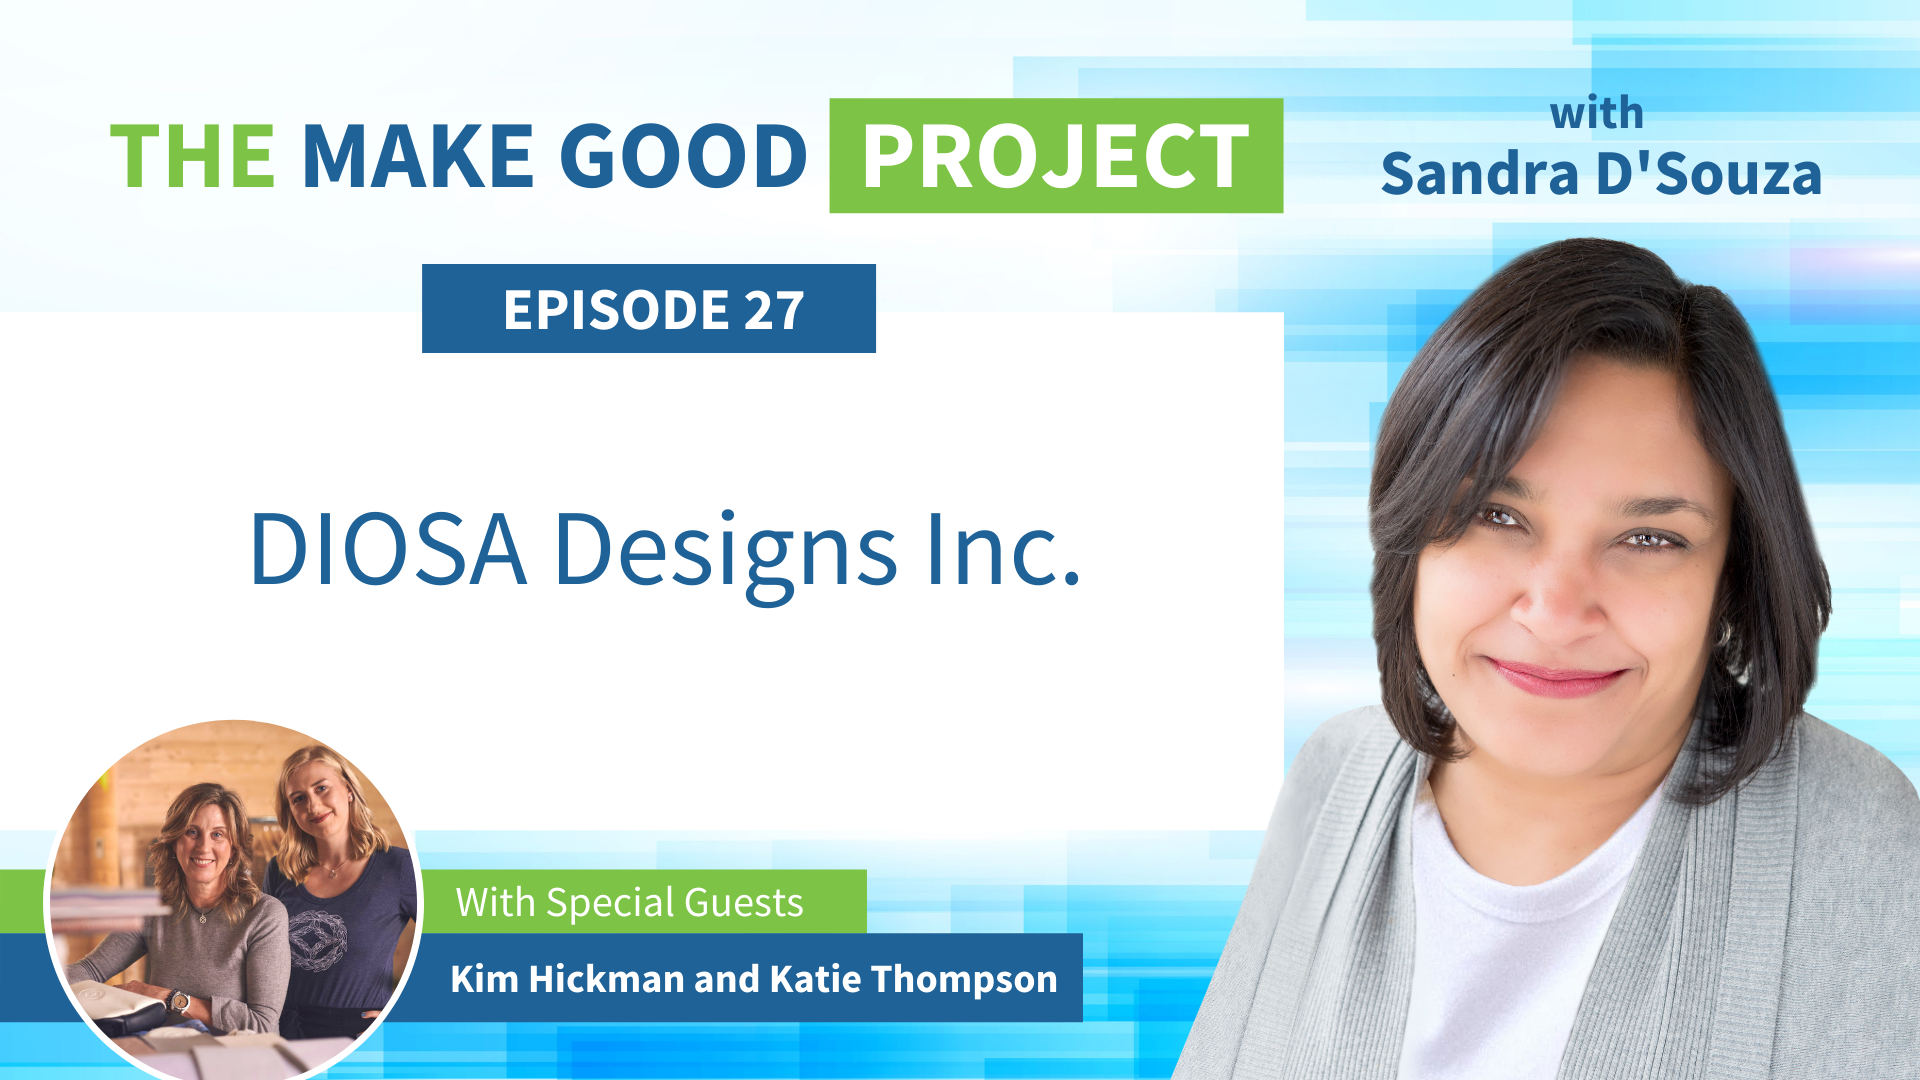 EP #27: DIOSA Designs Inc. with Kim Hickman and Katie Thompson